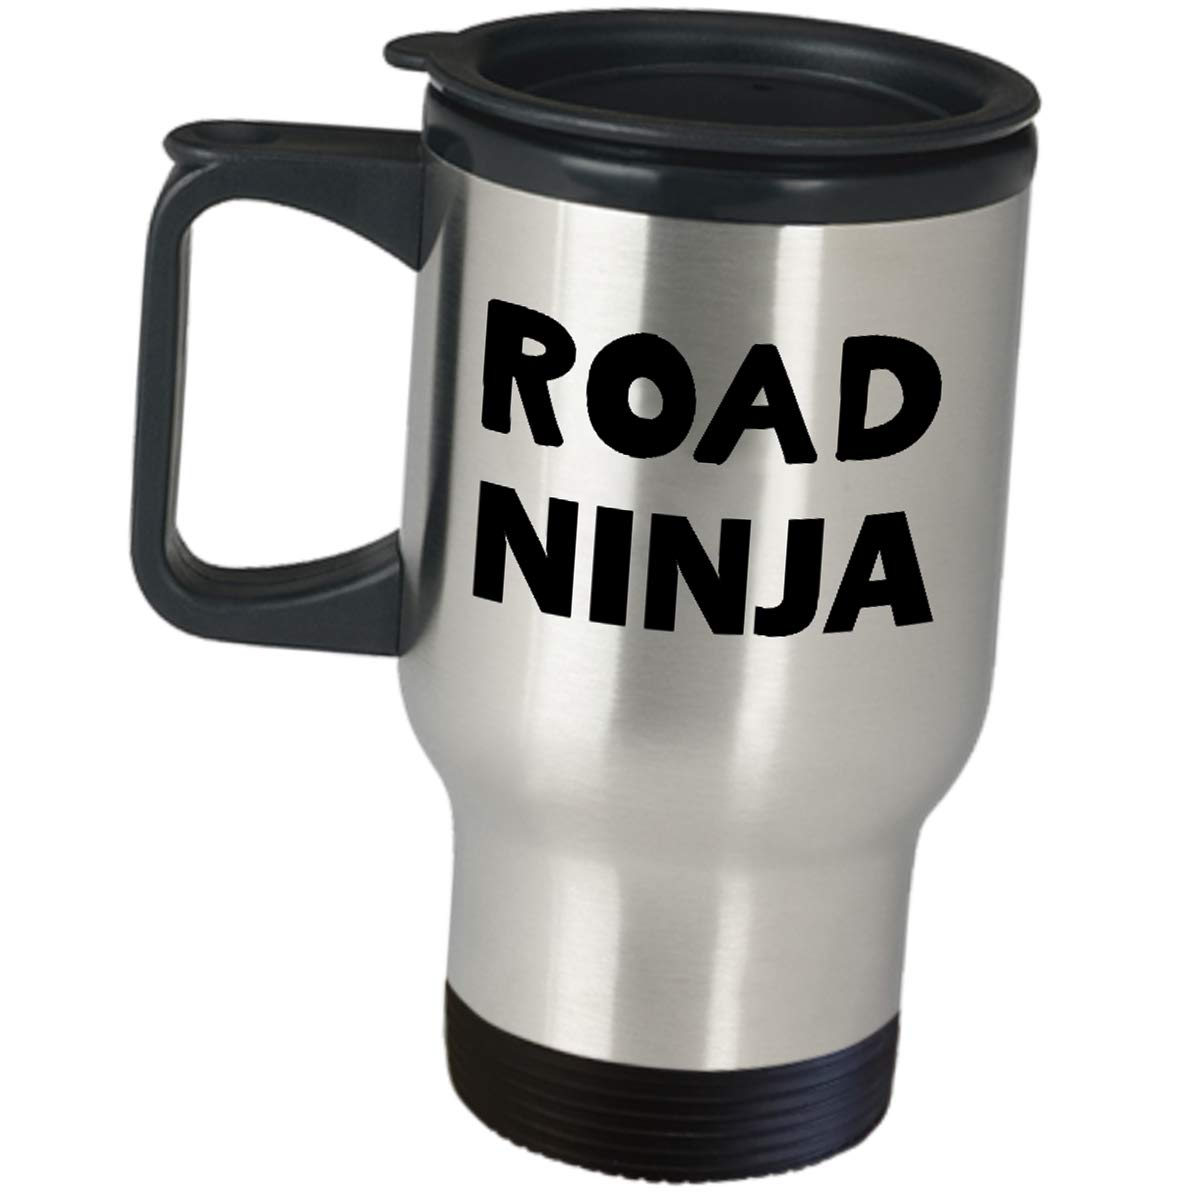 Amazon.com: Funny Cute Gag Gifts for Crossing Guard - Road ...